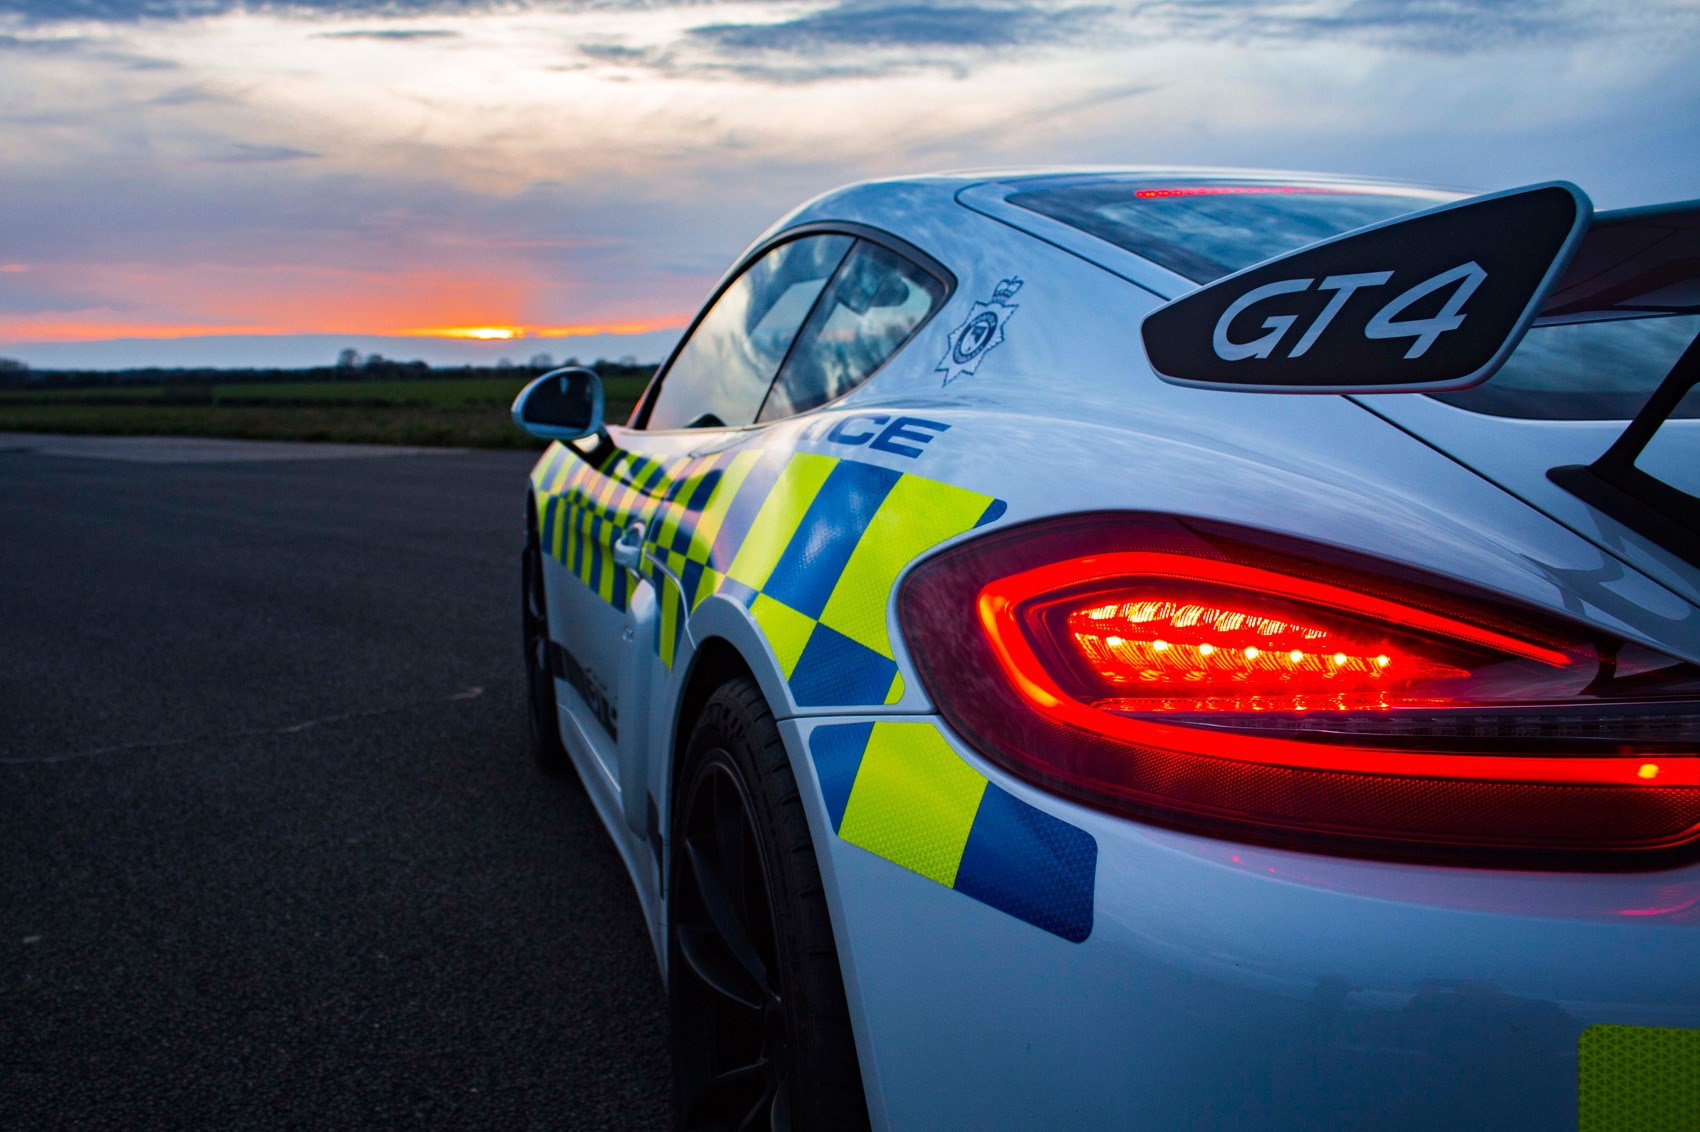 Porsche Cayman Gt4 Kitted Out For Police Duty Car Magazine